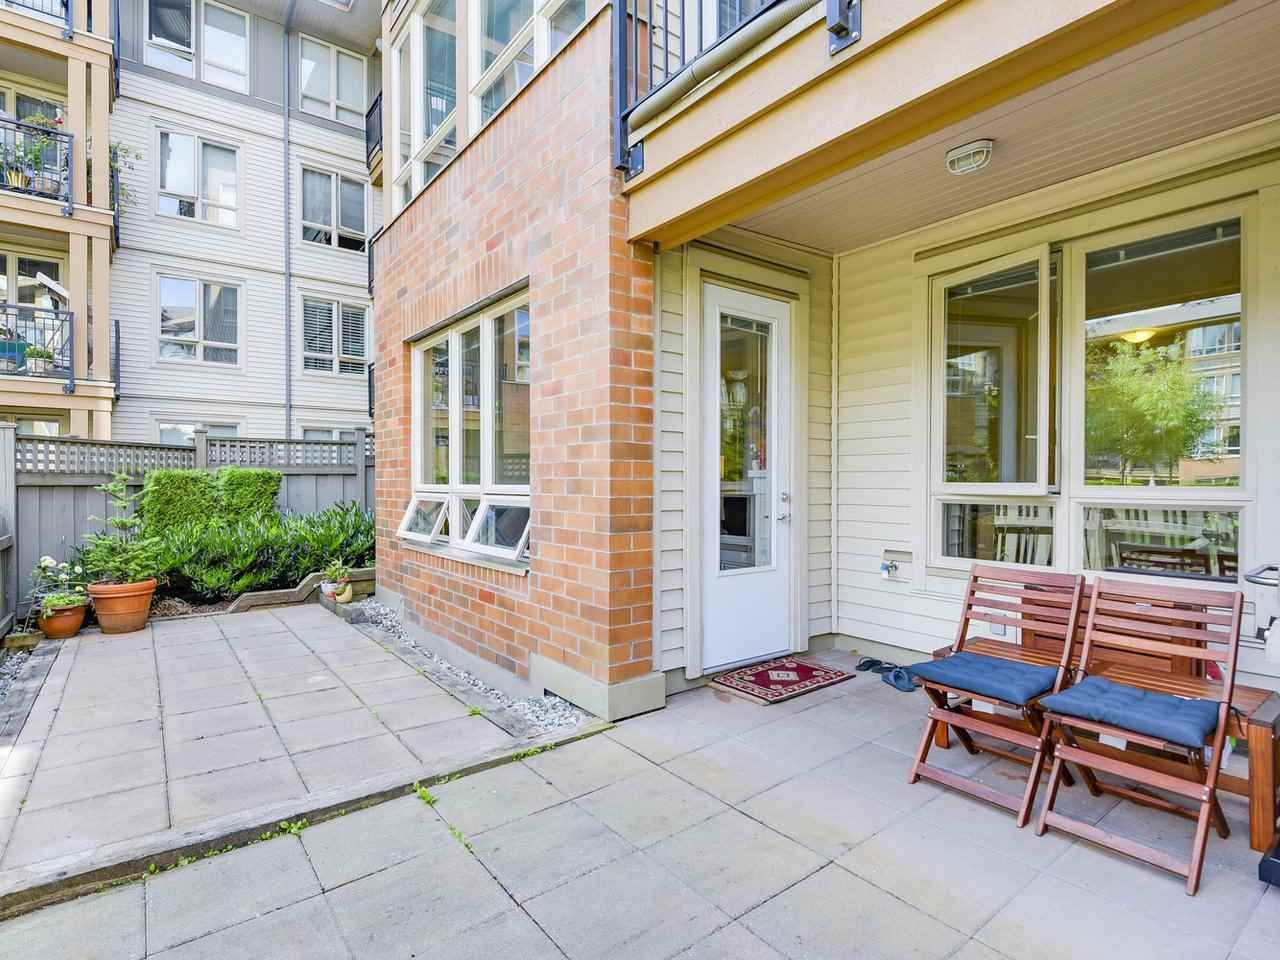 Photo 13: Photos: 106 2601 WHITELEY COURT in North Vancouver: Lynn Valley Condo for sale : MLS®# R2186381